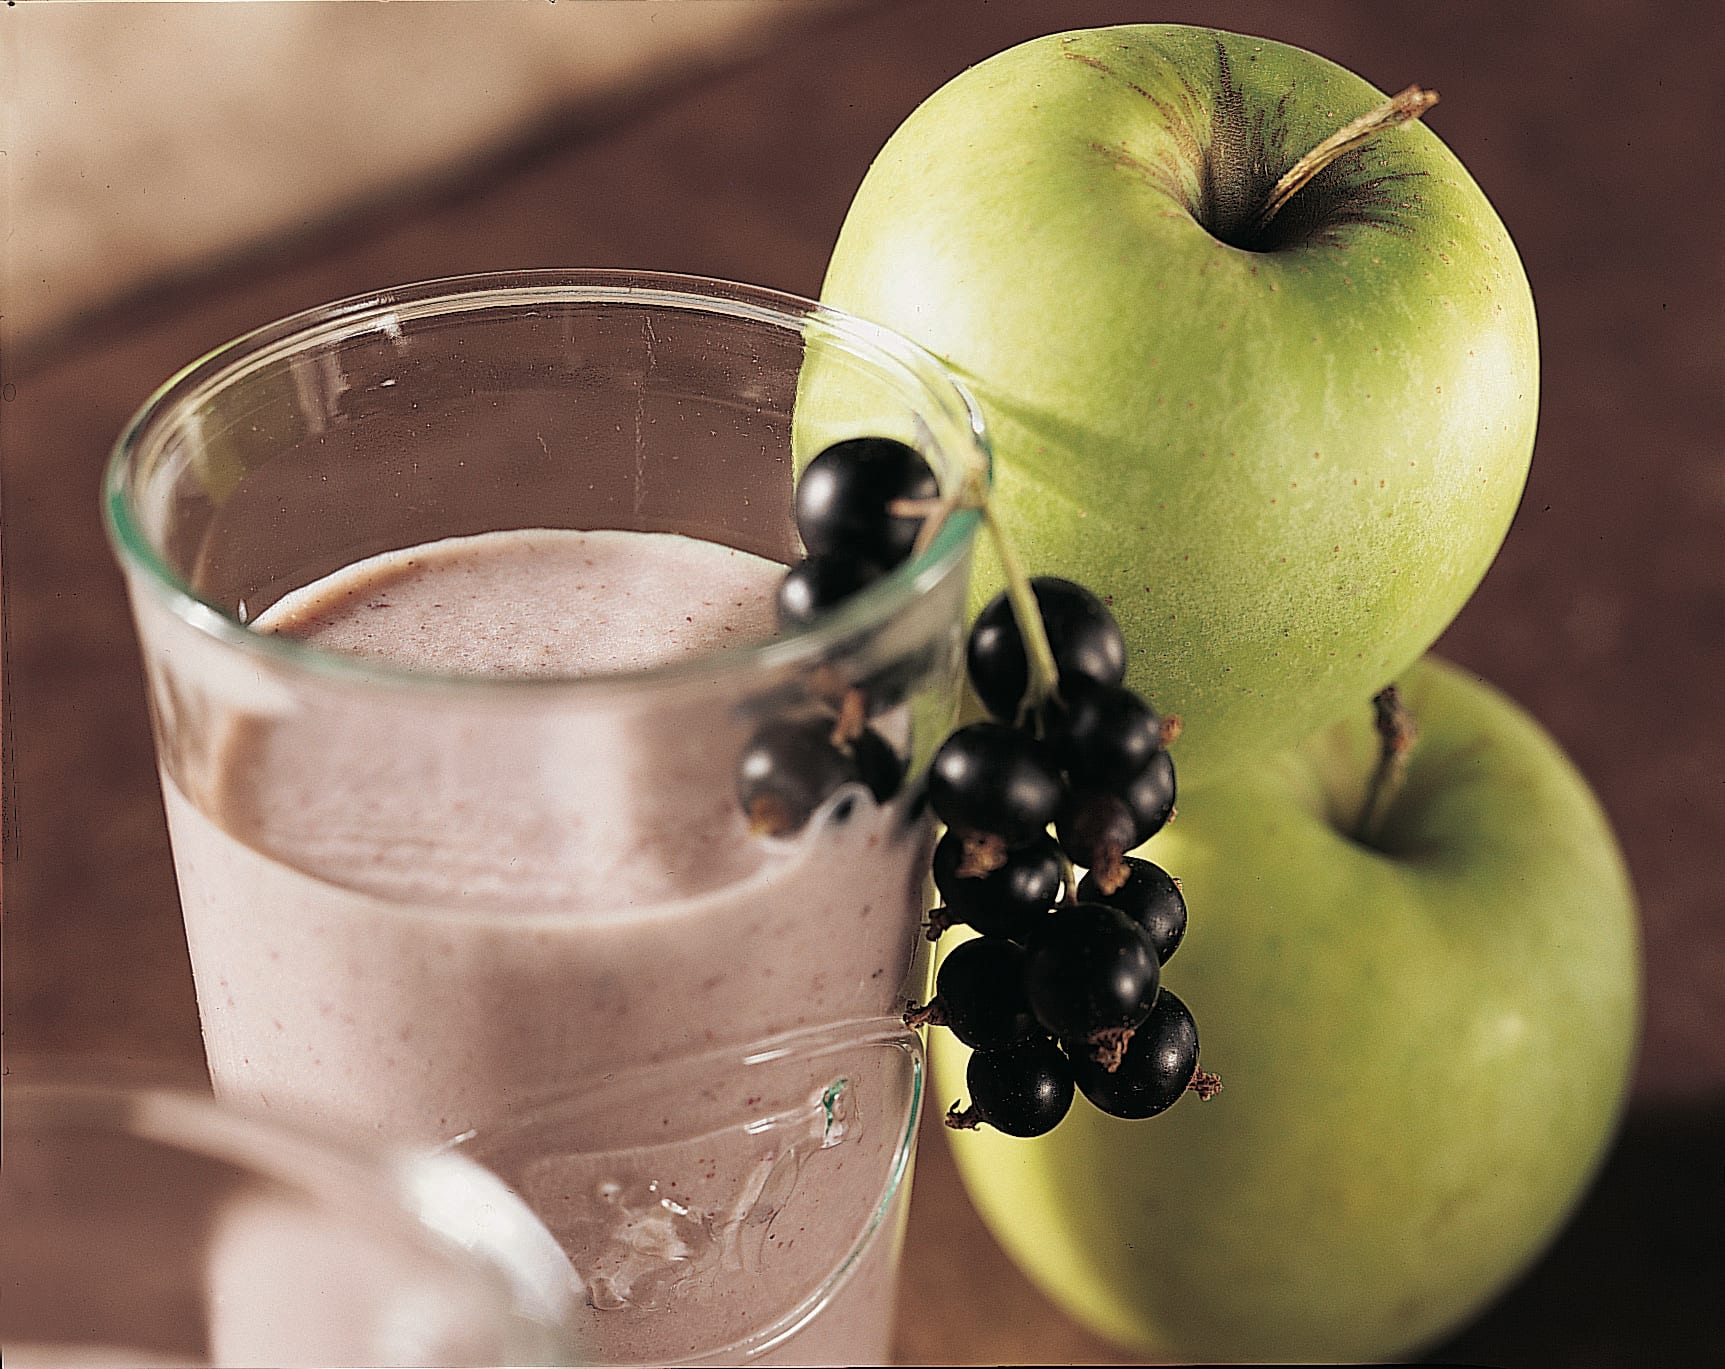 Cassis-Apfel-Milch